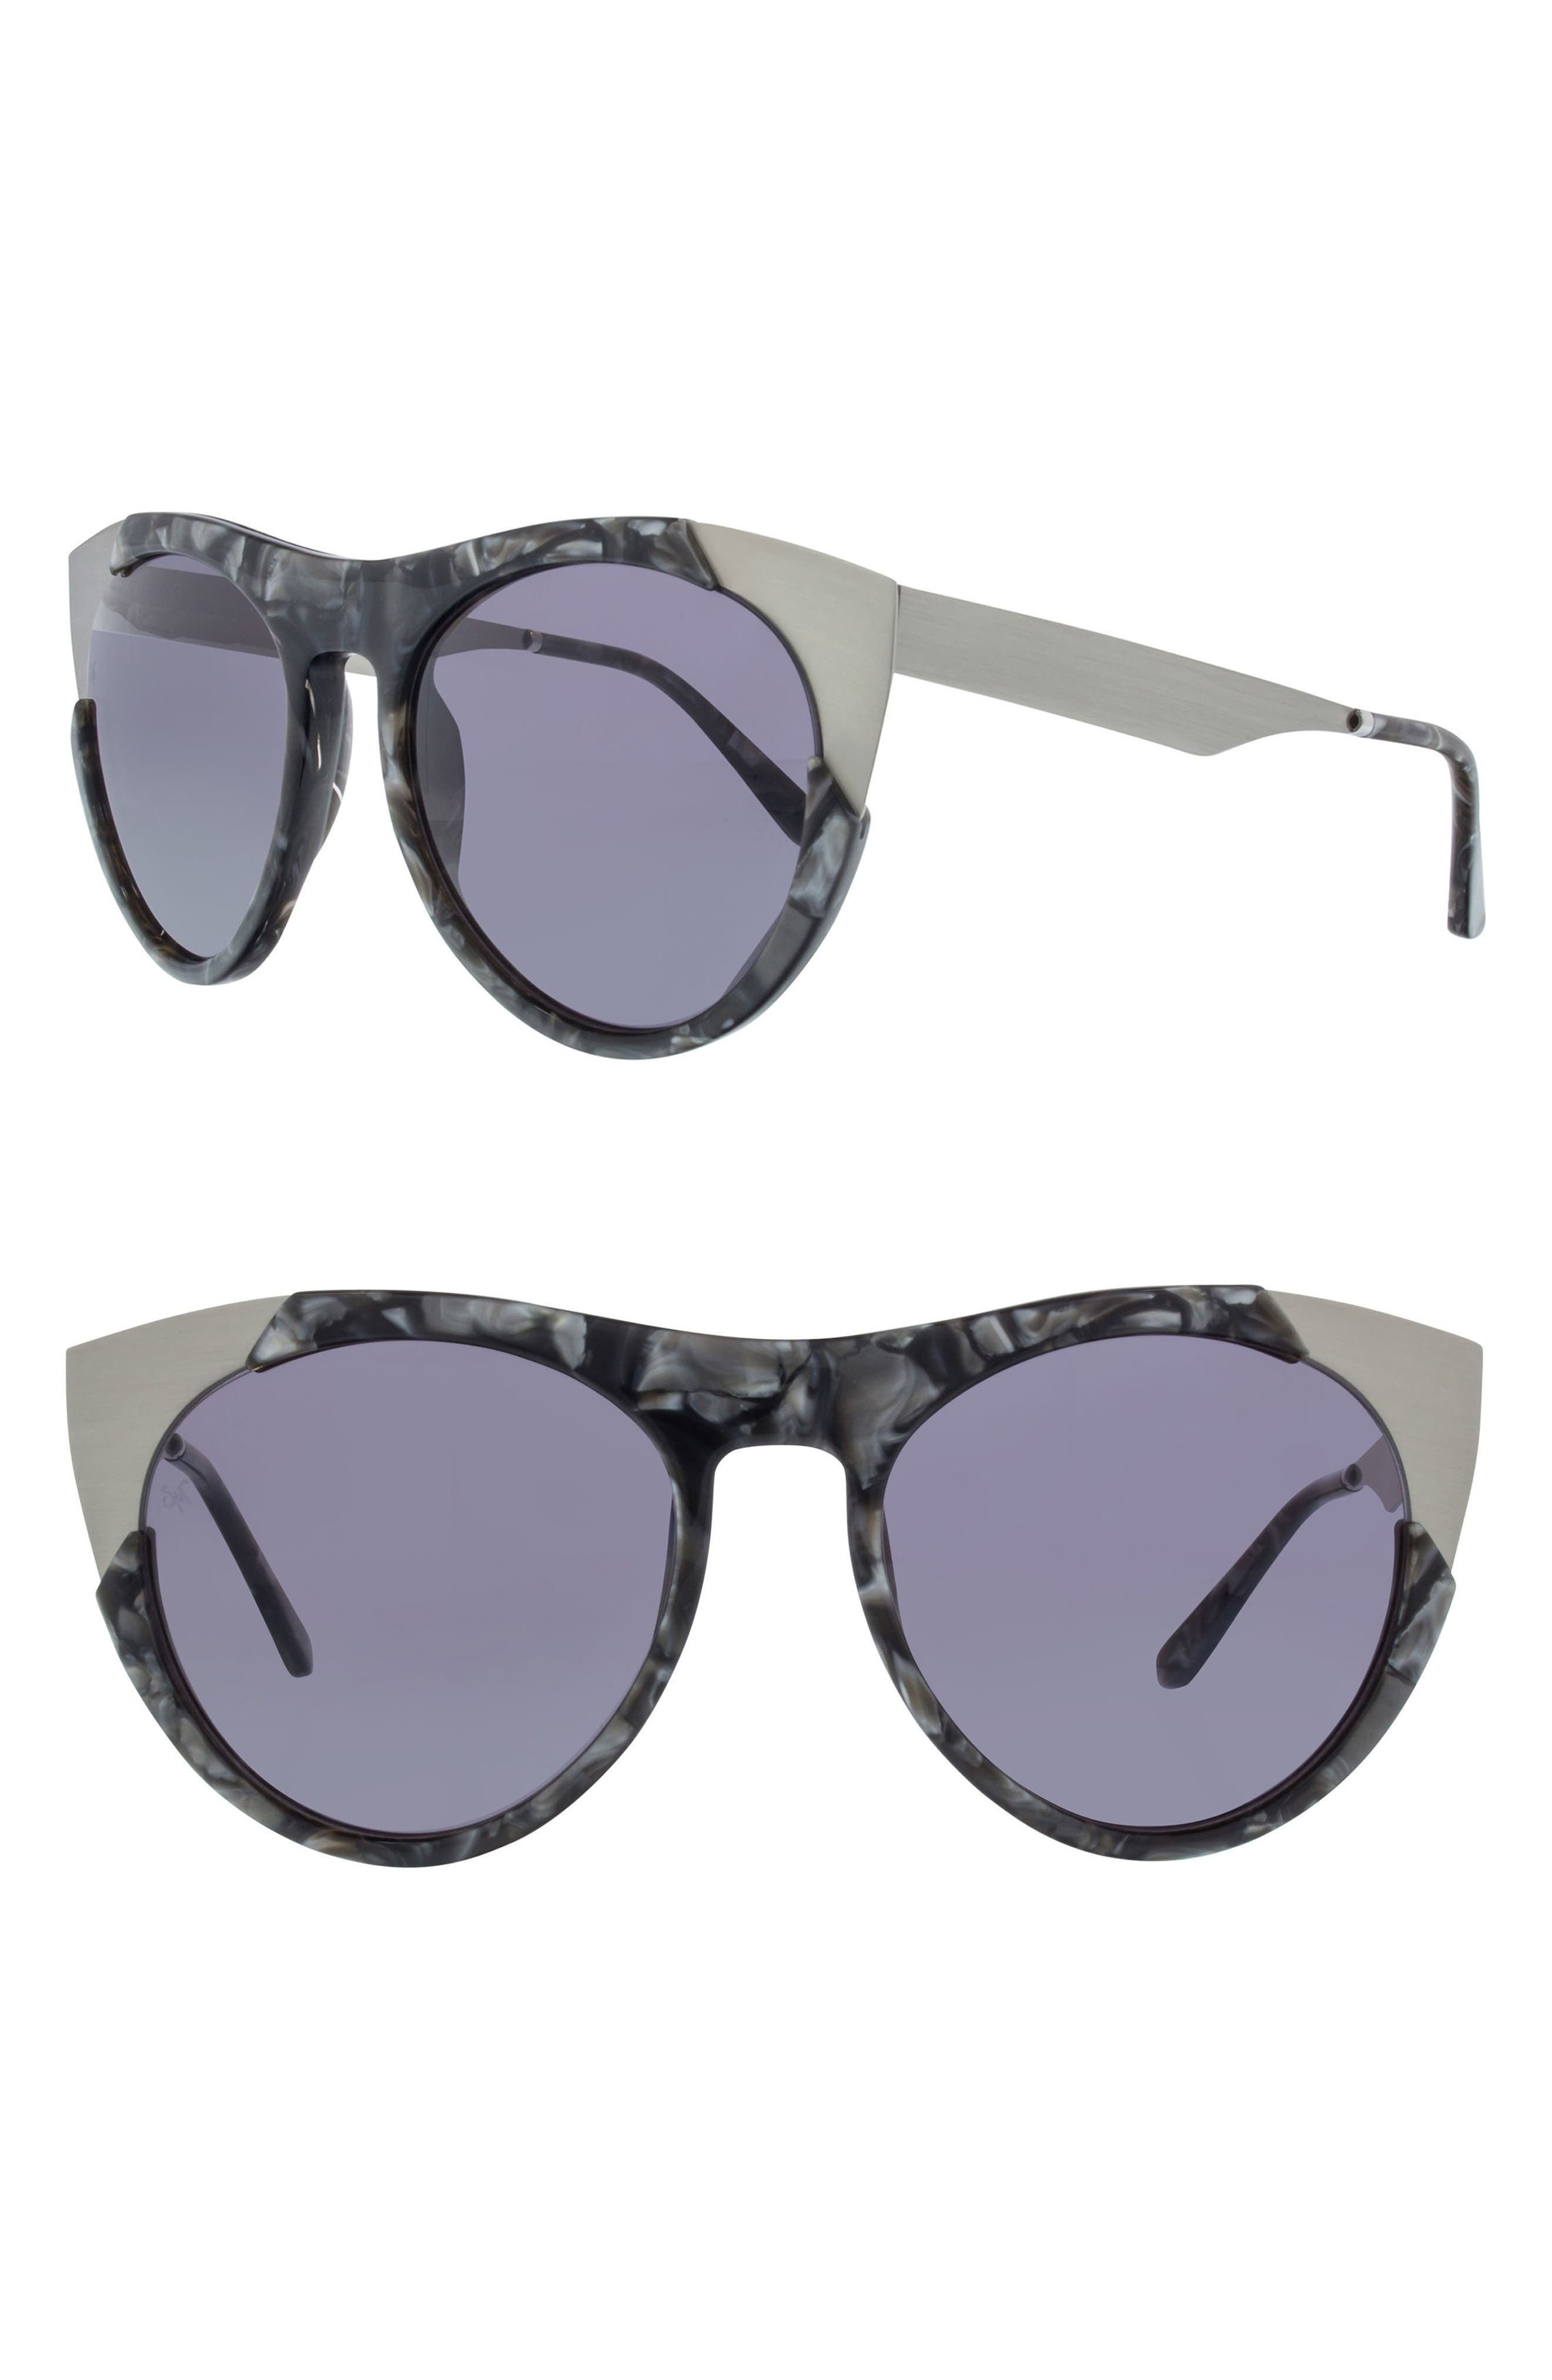 Zoubisou 53mm Cat Eye Sunglasses,                         Main,                         color, BLACK SCALES/ BRUSHED SILVER